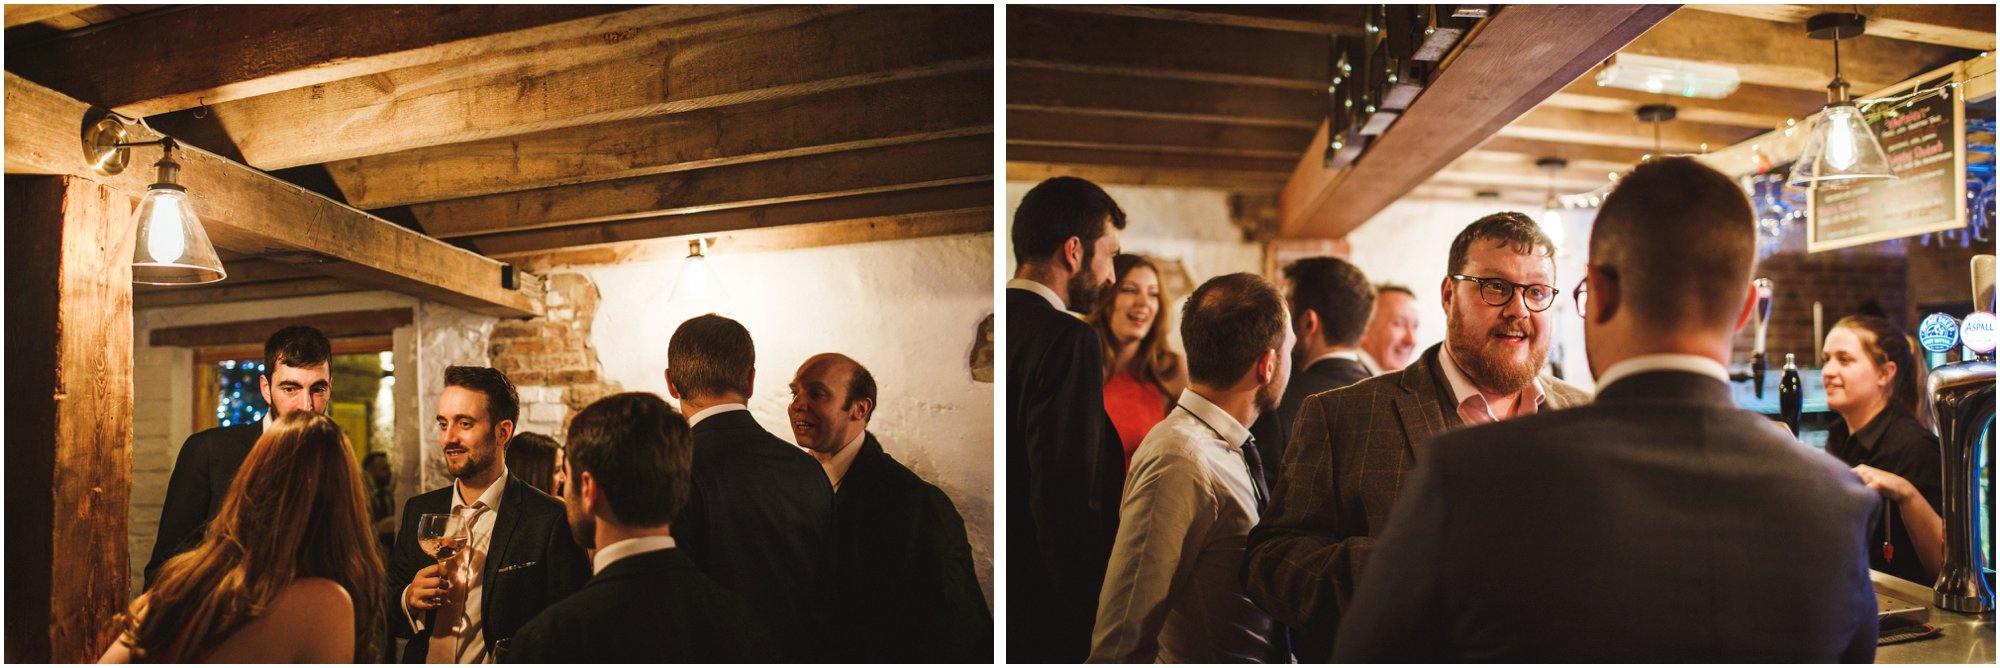 Barmbyfields Barn Wedding York_0125.jpg